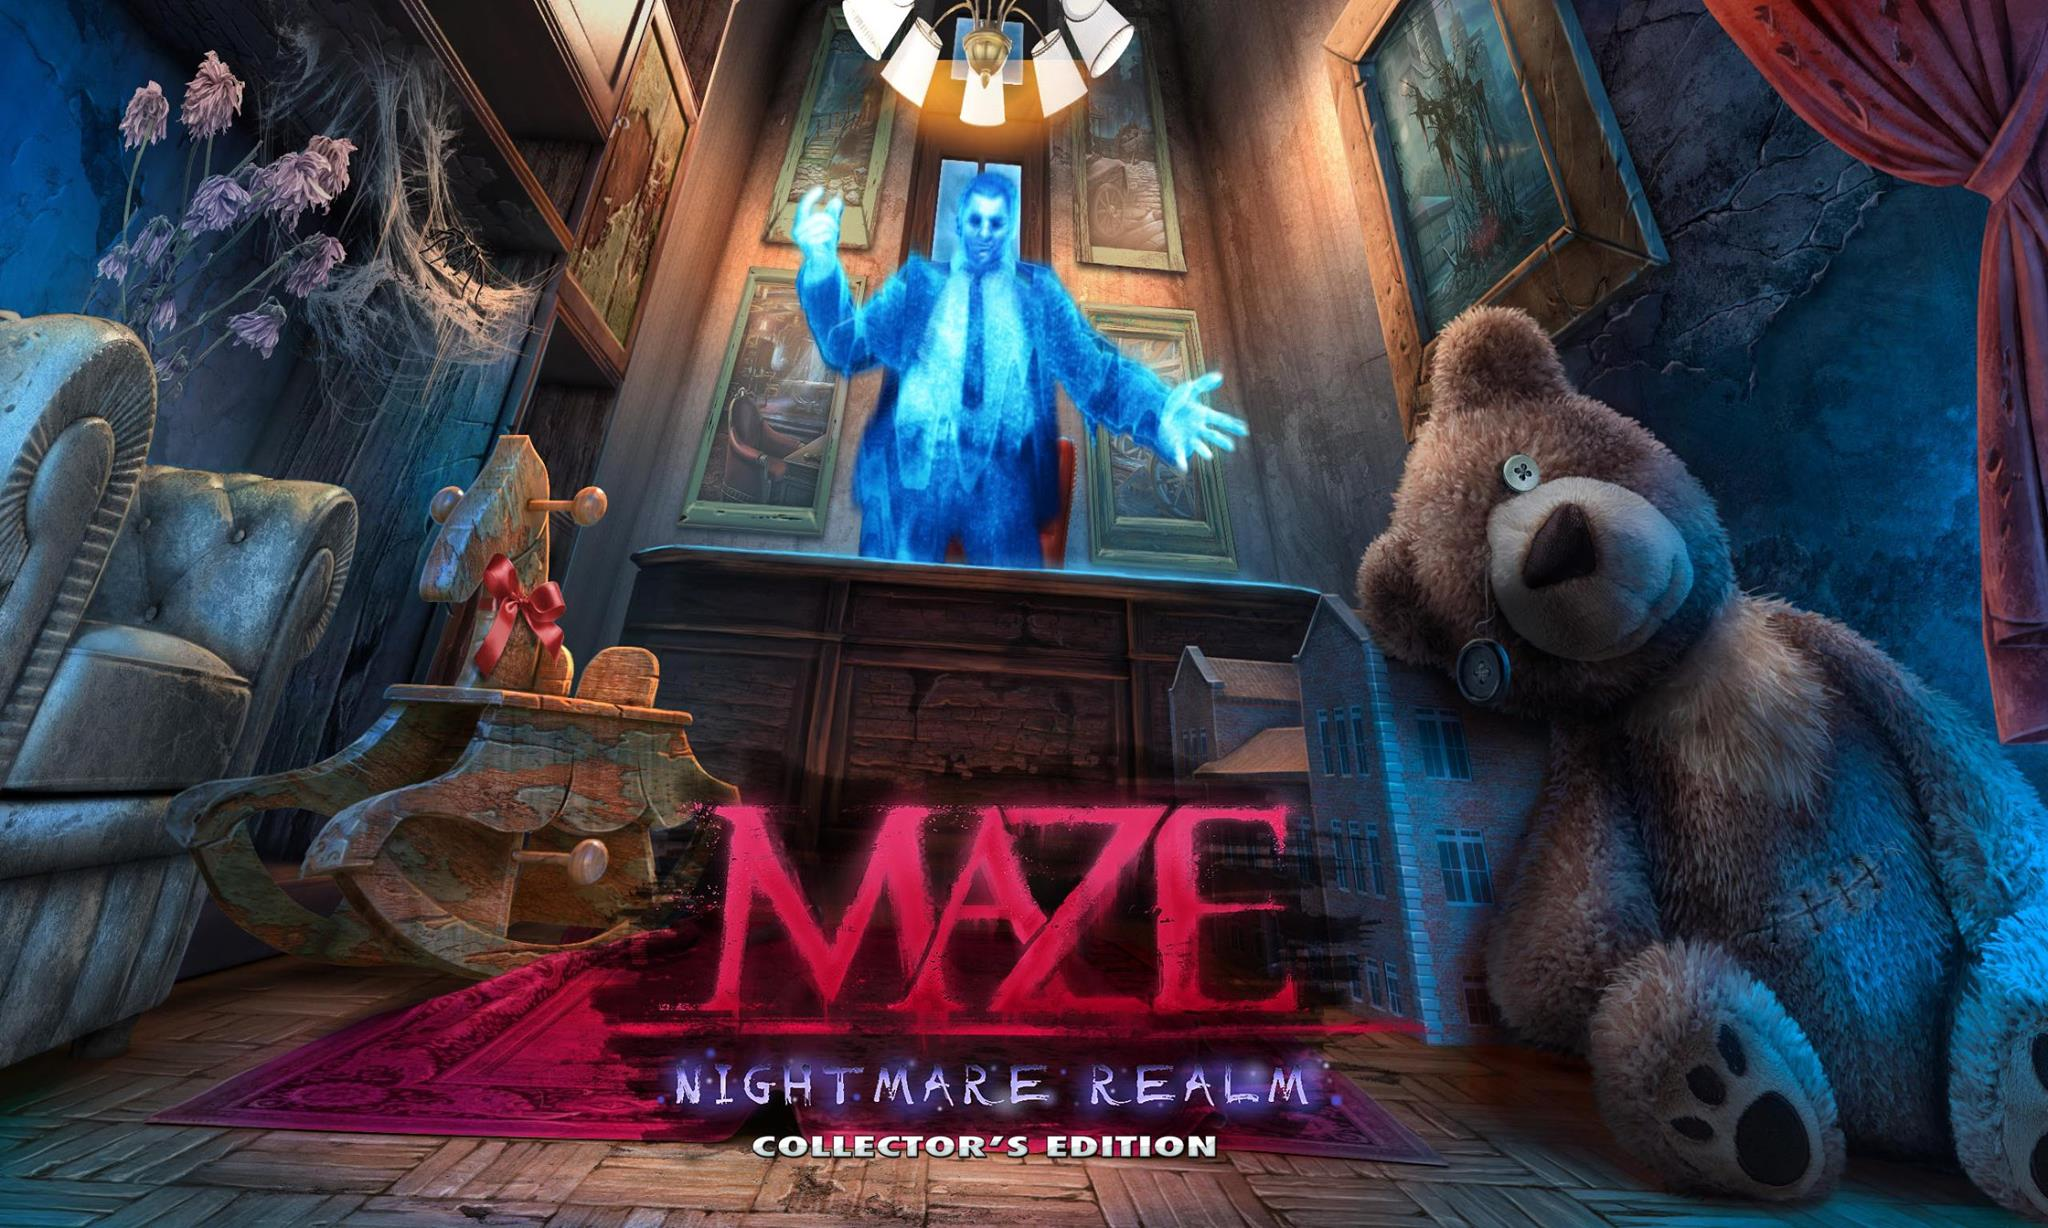 Maze:Nightmare Realm (Mad Head Games, Big Fish Games)